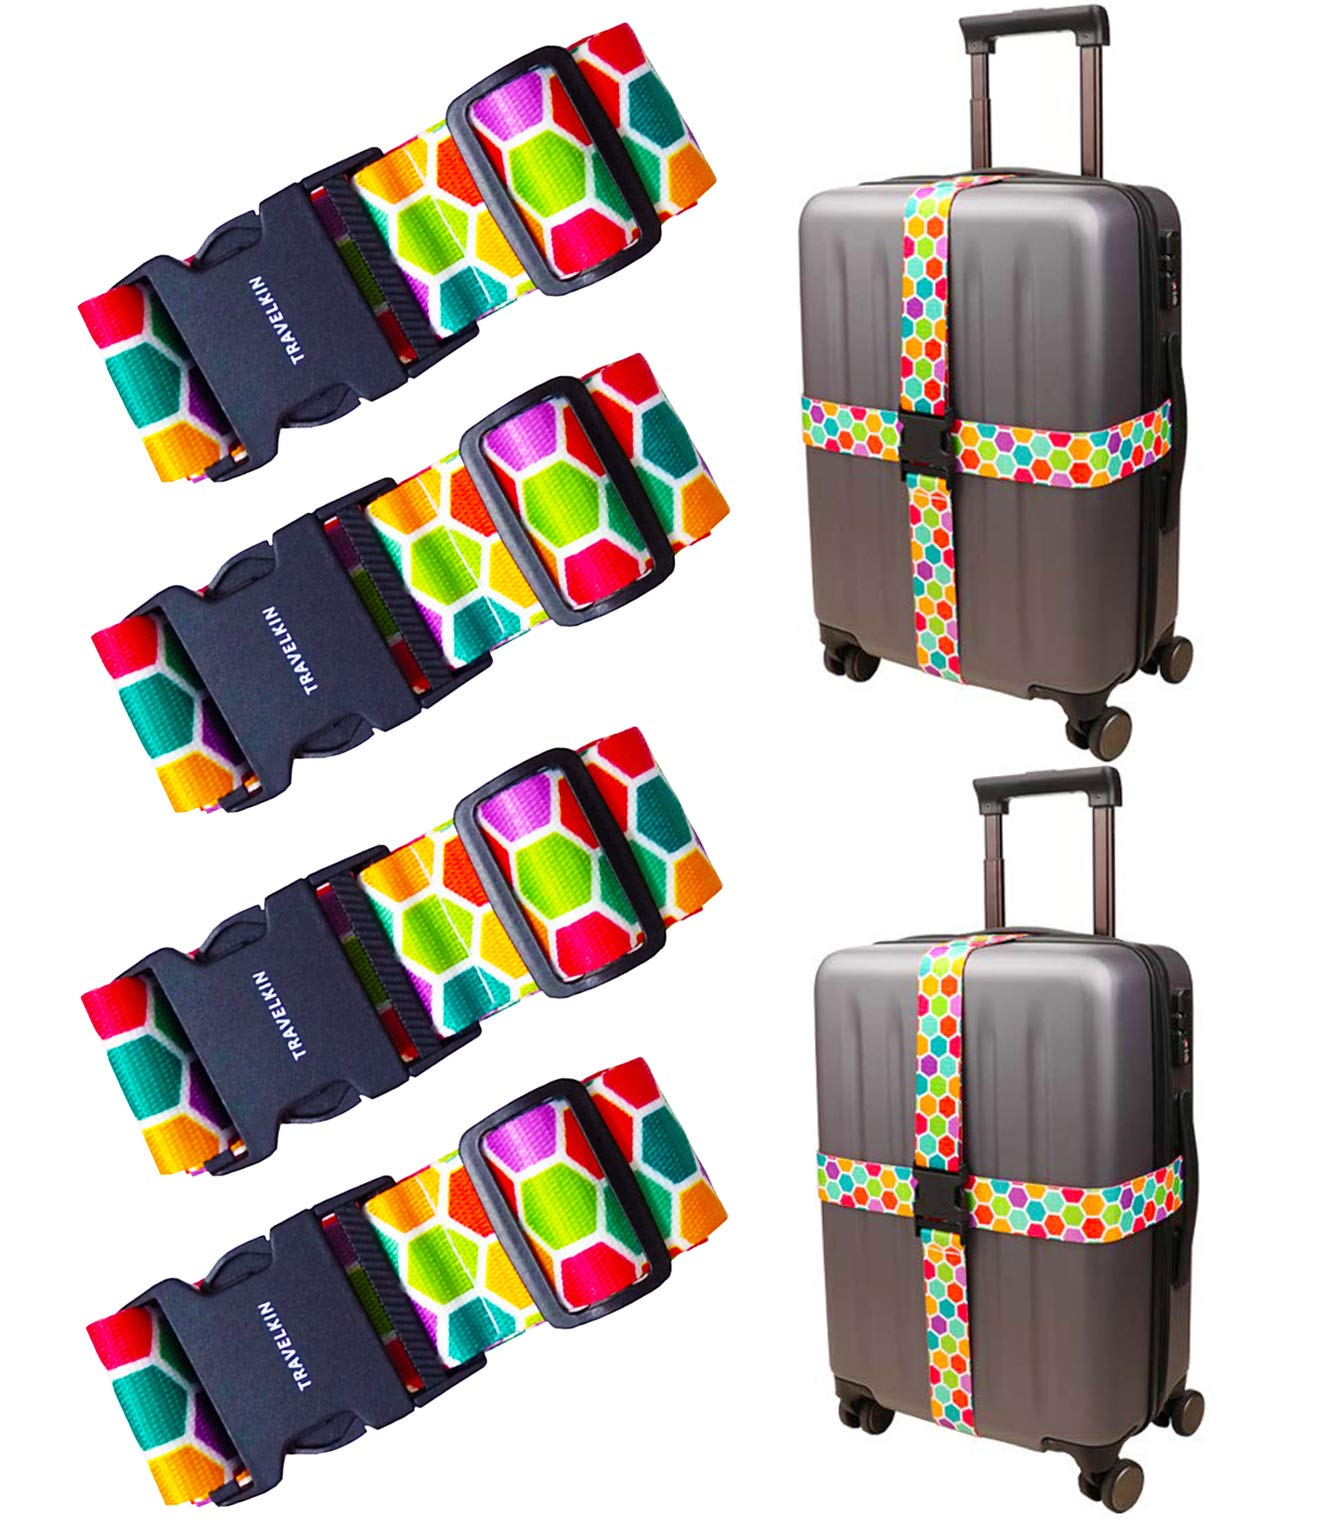 Luggage Straps Adjustable Travel Suitcase Belt Travel Baggage Accessories 4 Pack by Lucky Xiang